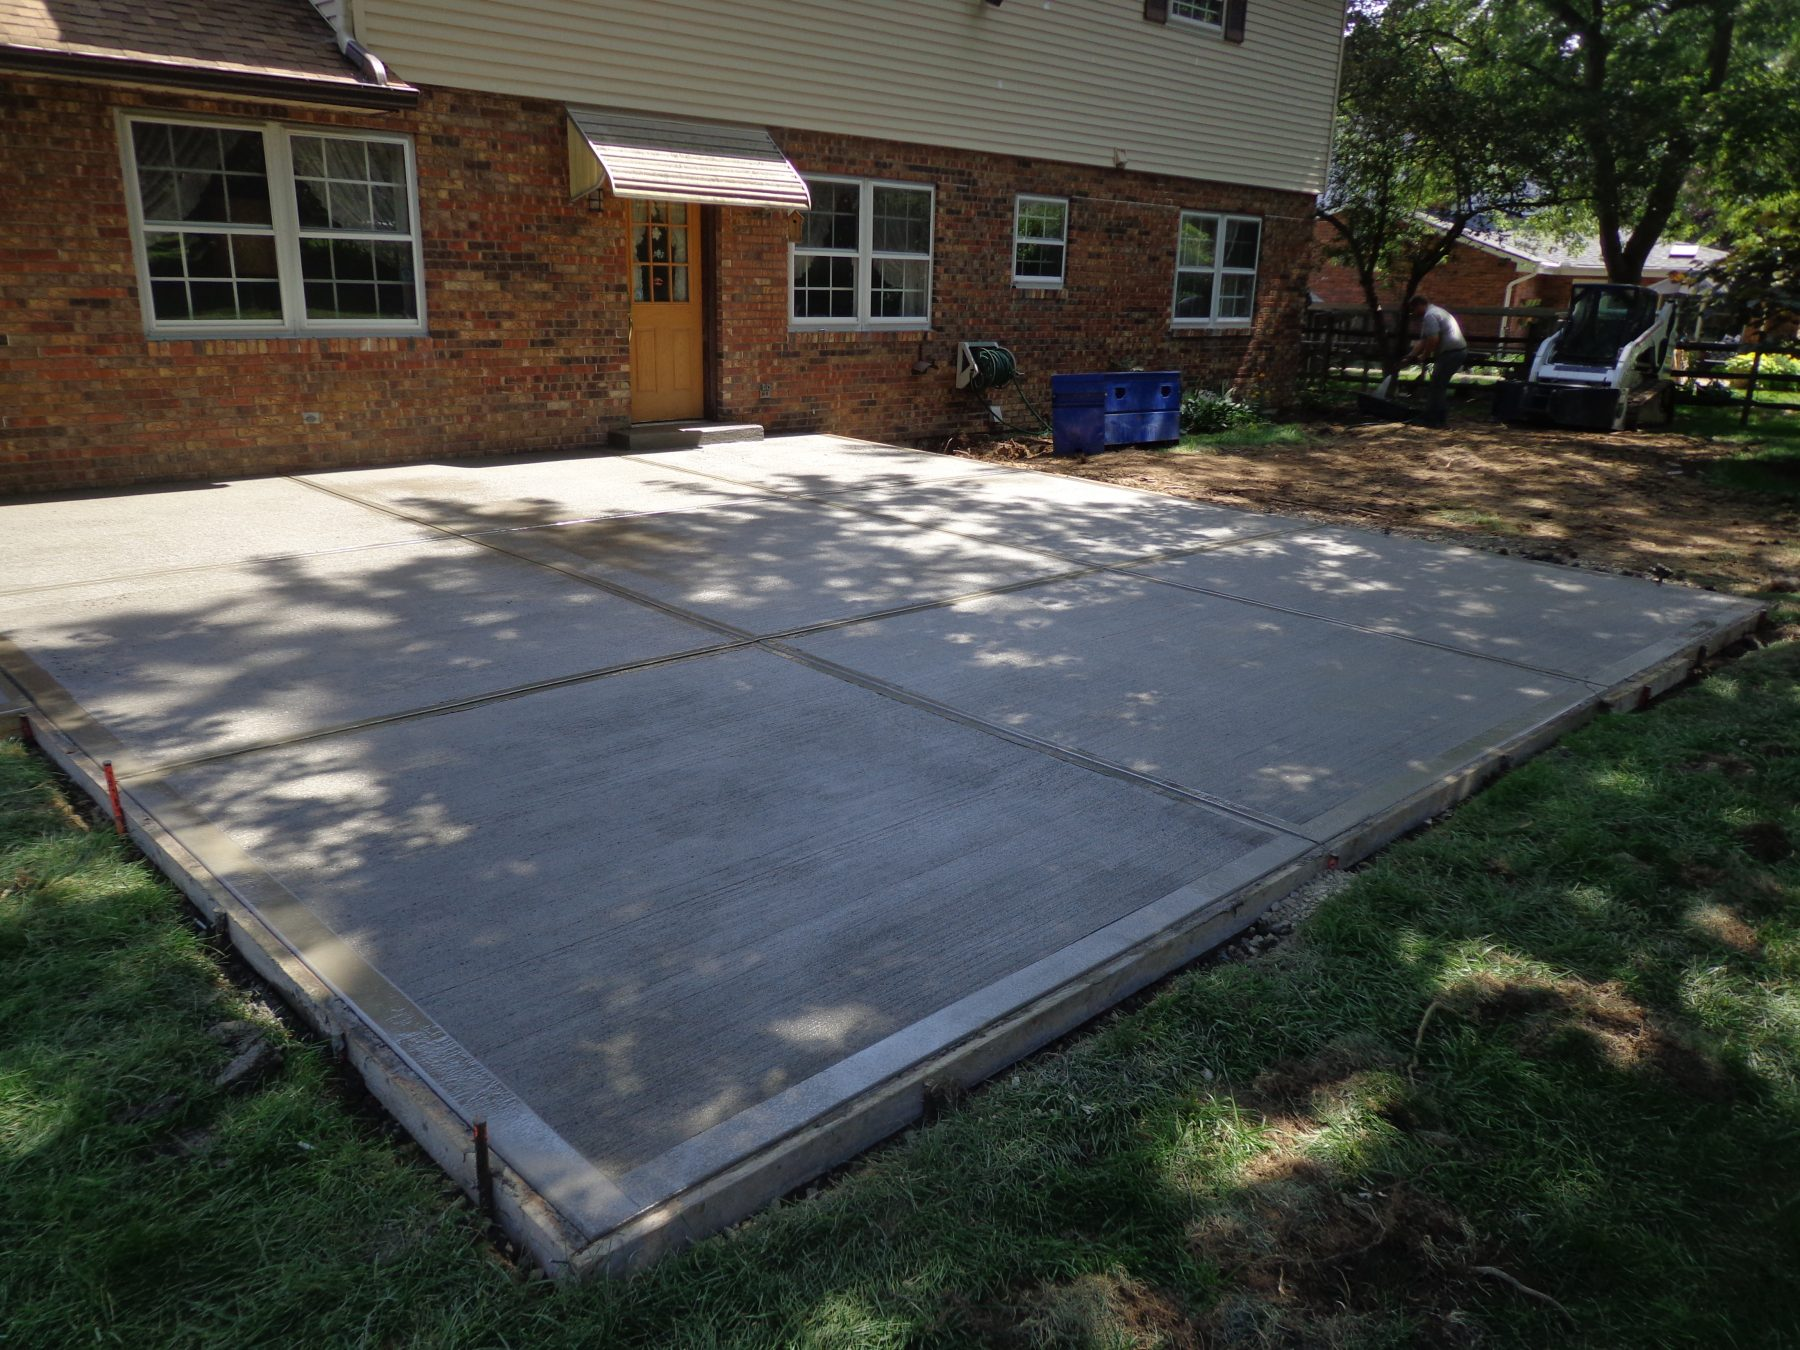 New Back Patio Driveway Apron And Structural Steel Angle